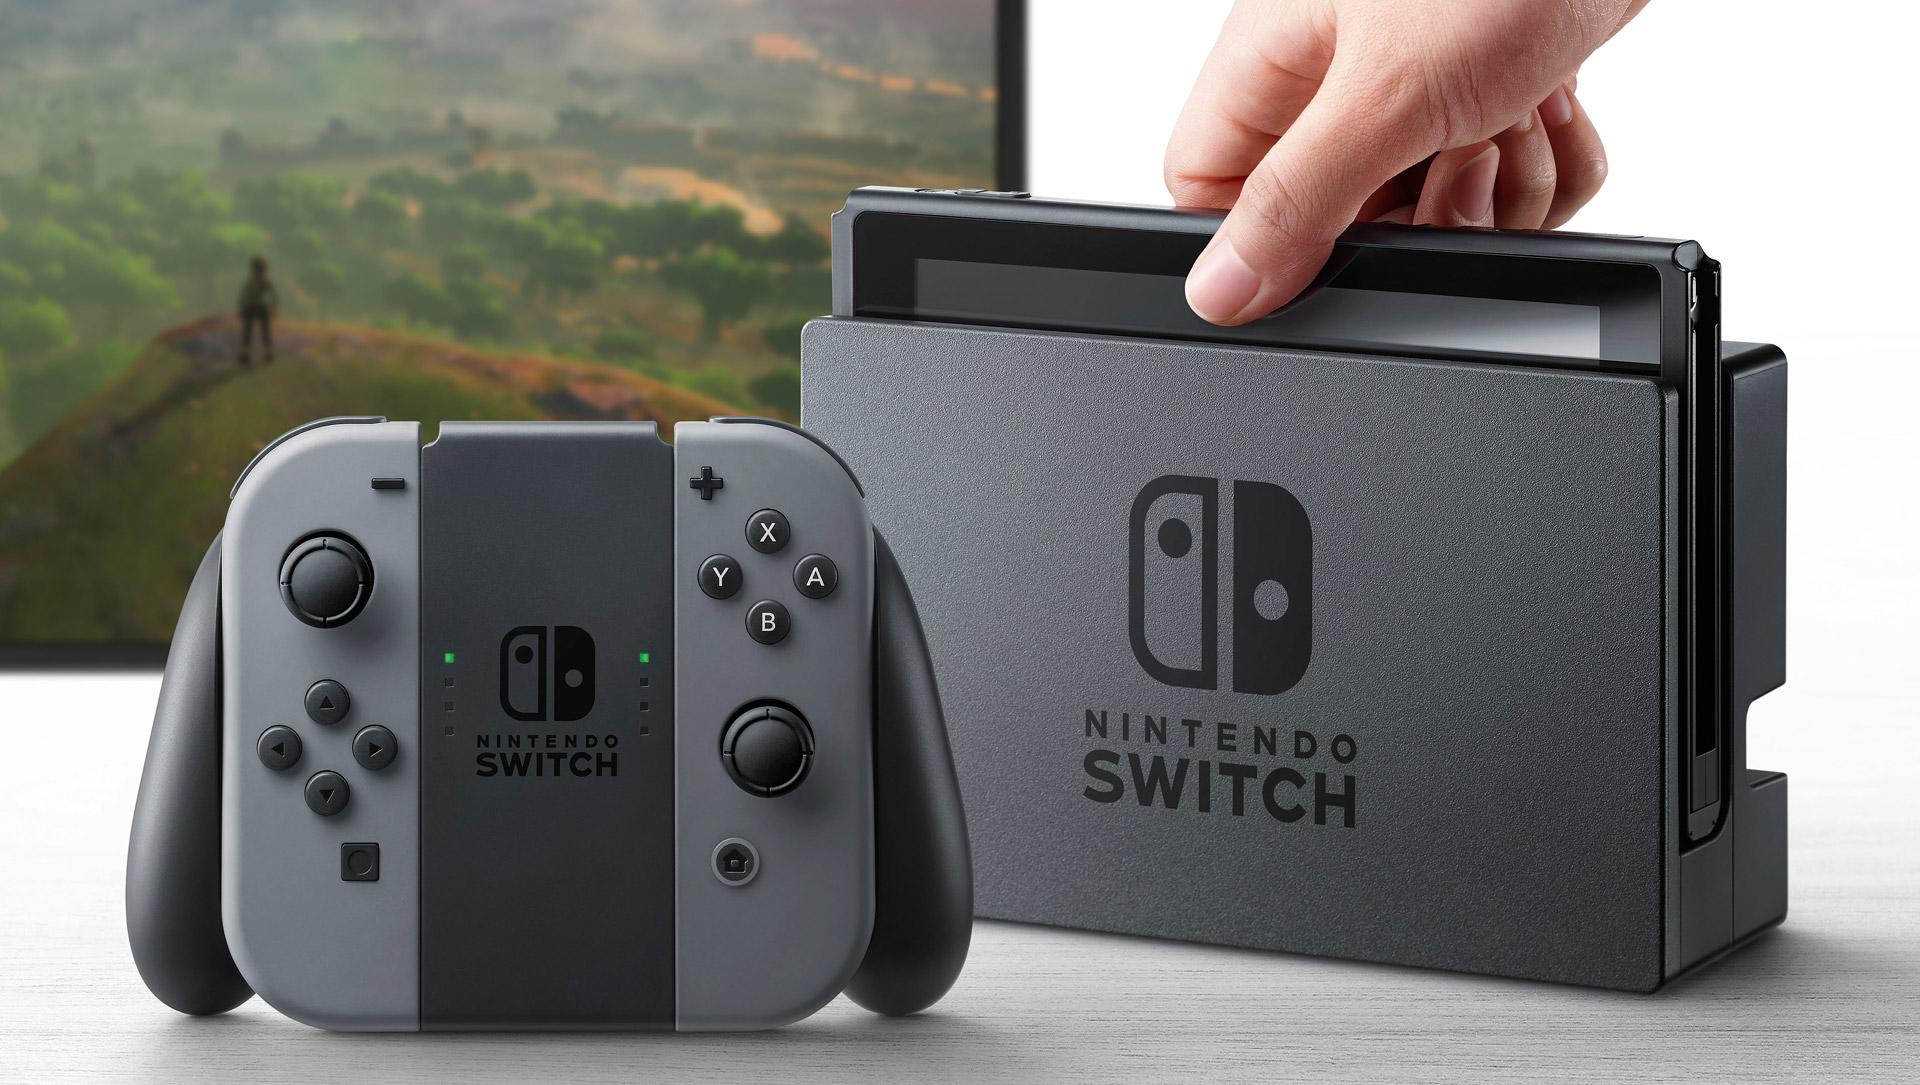 You can pre-order a Nintendo Switch starting Friday